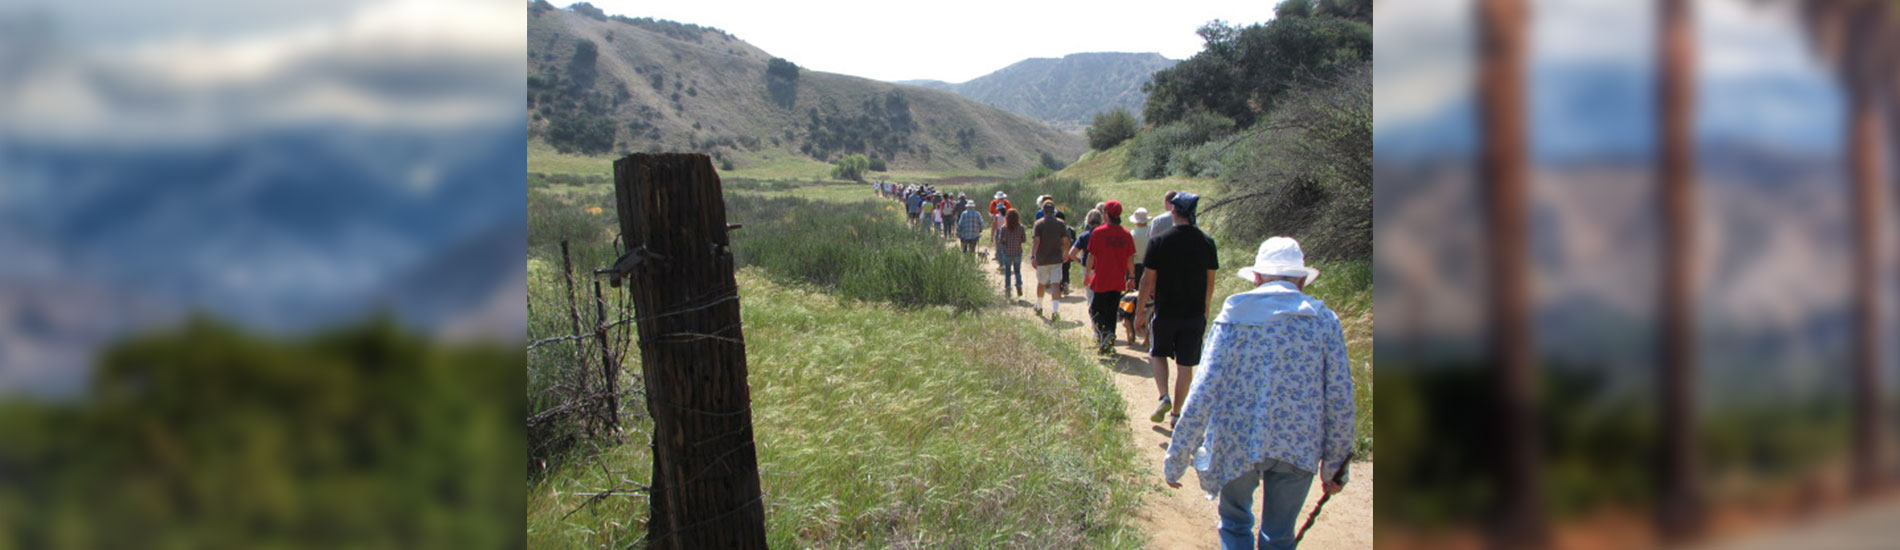 Redlands Trails Alliance